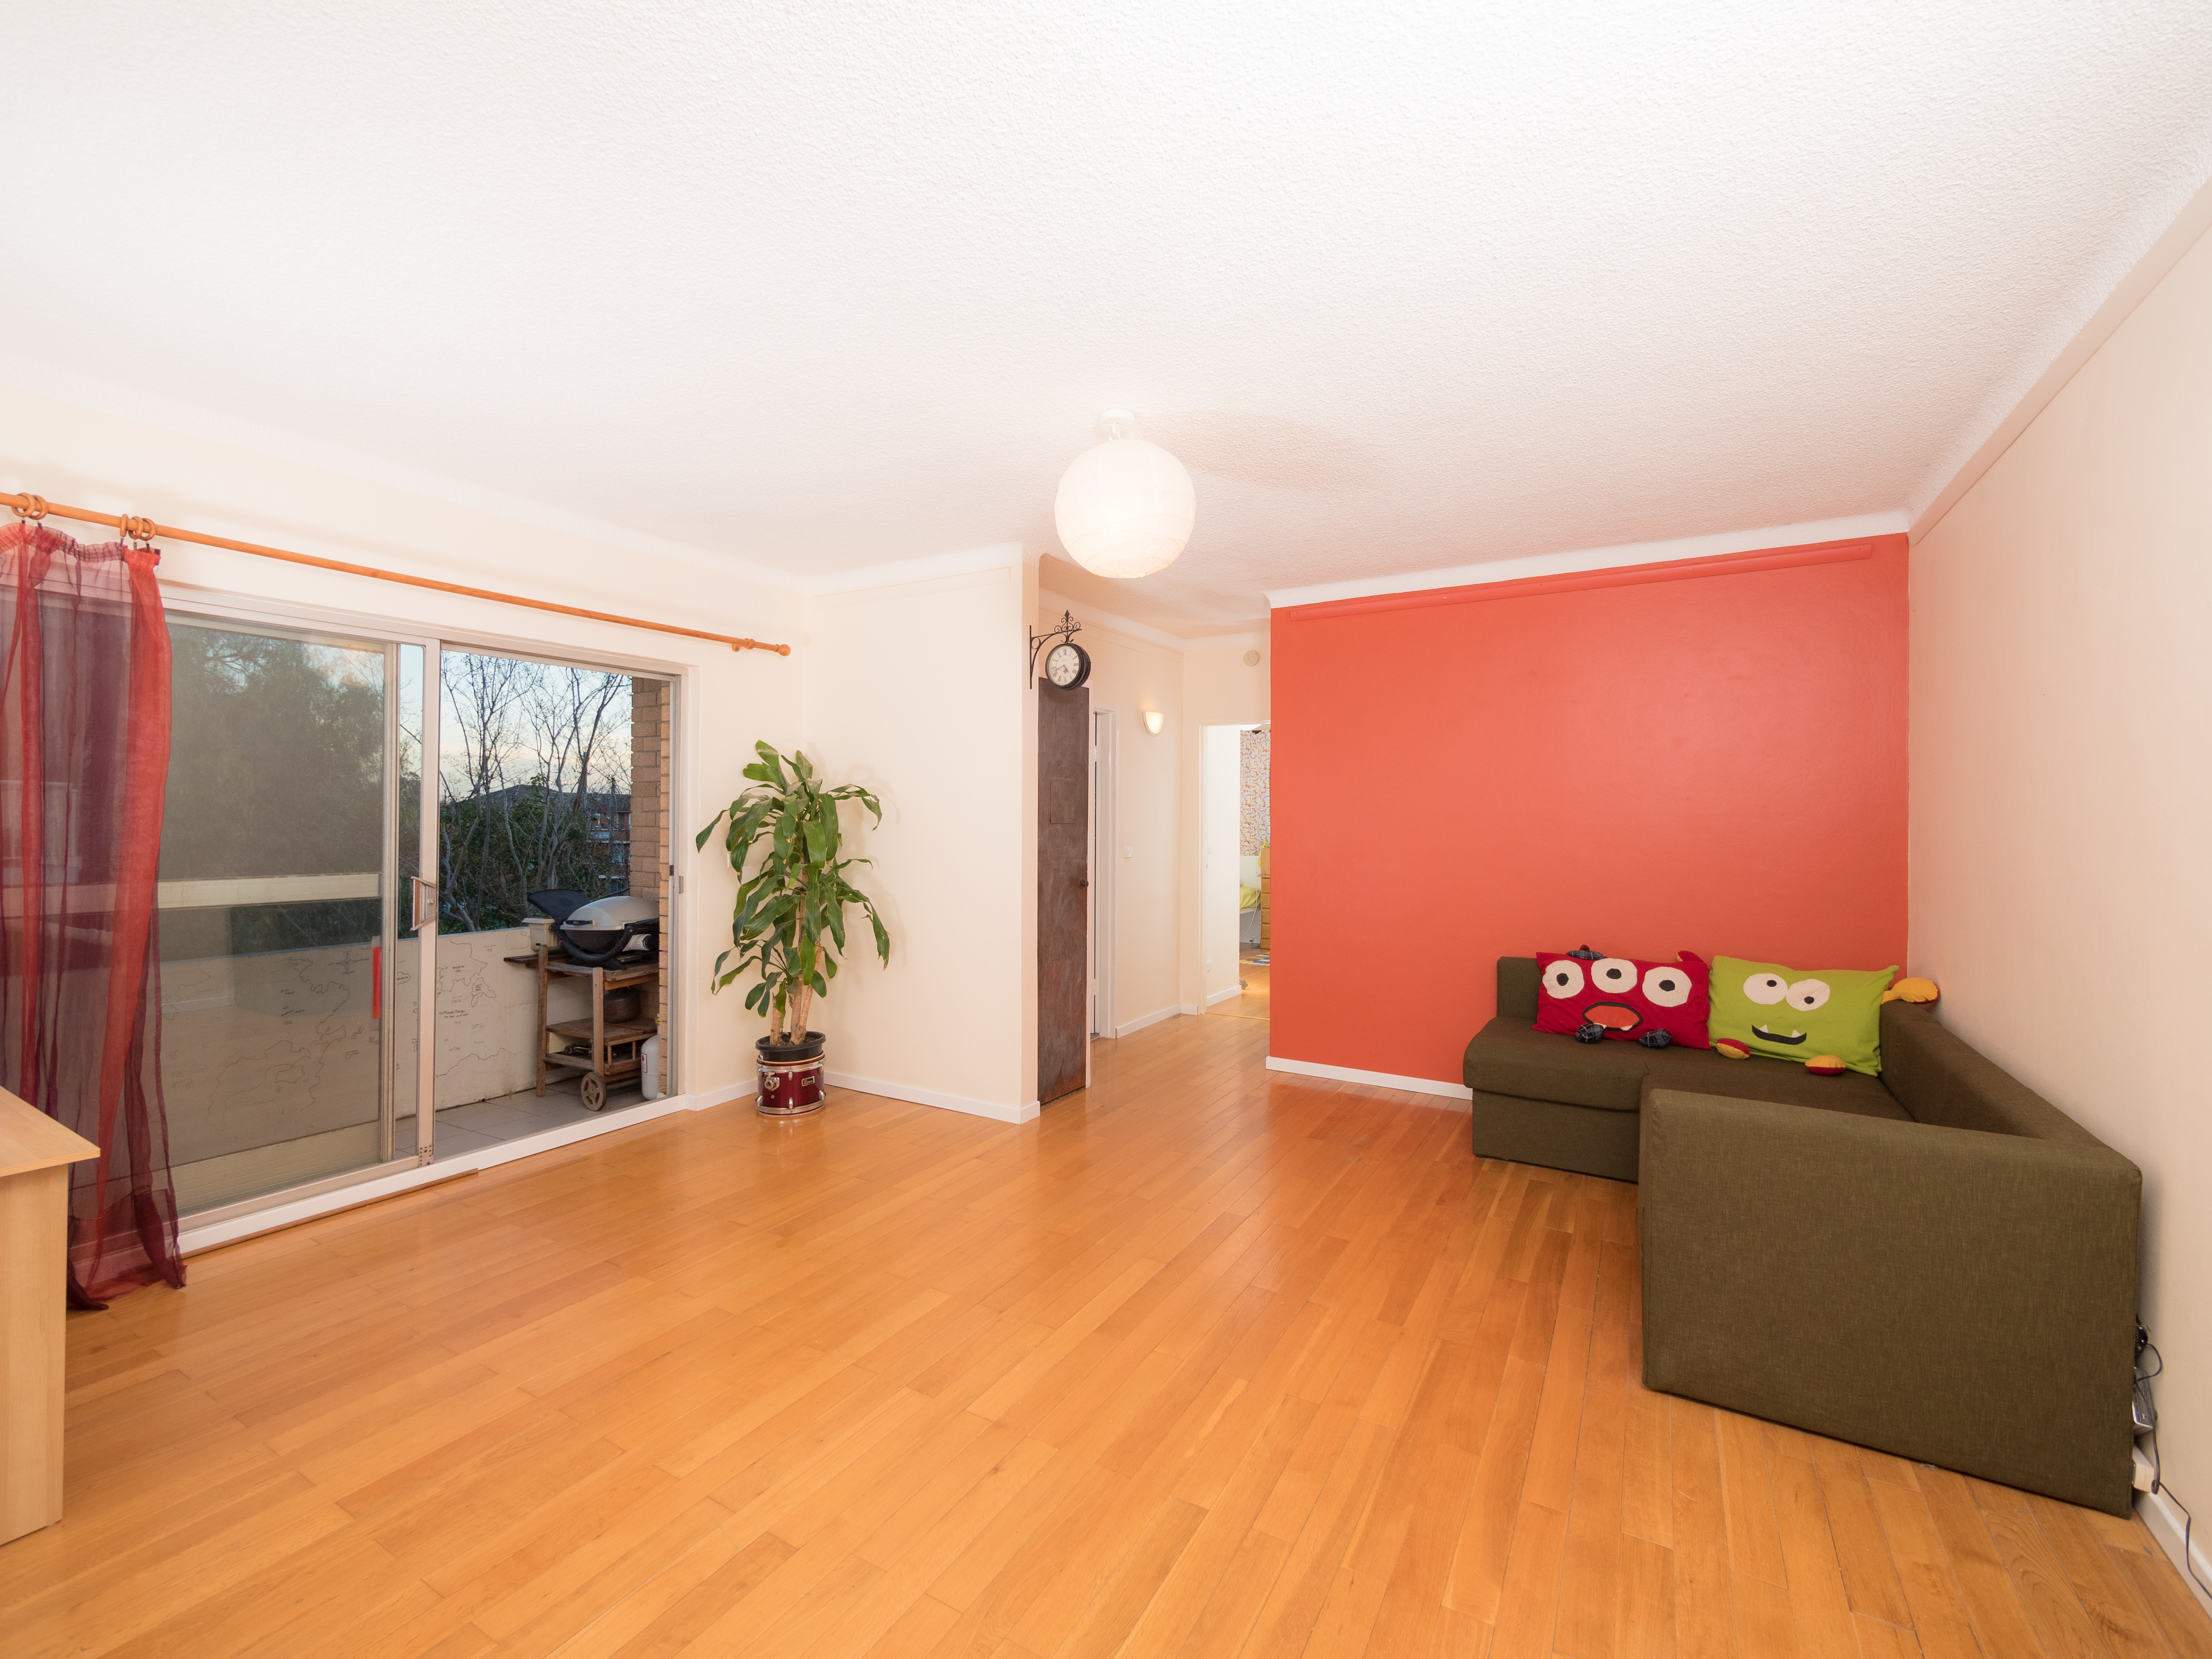 7 30 32 terrace road dulwich hill nsw 2203 apartment for for 1 9 terrace road dulwich hill